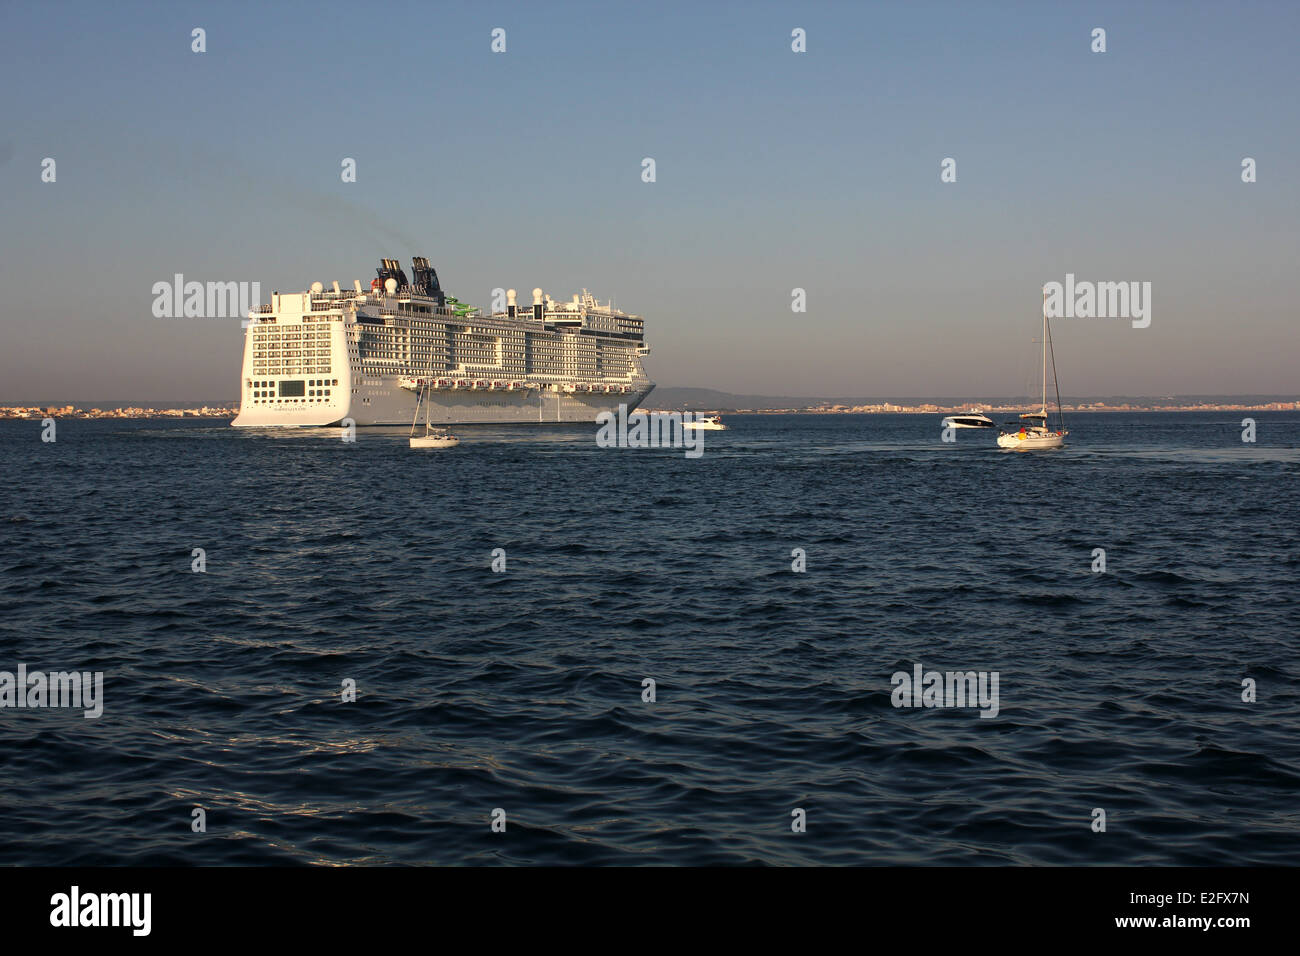 "Norwegian Cruise Line (NCL) Cruise ship ""Norwegian Epic"" (325 mtrs) - departing port at late afternoon - leisure - Stock Image"